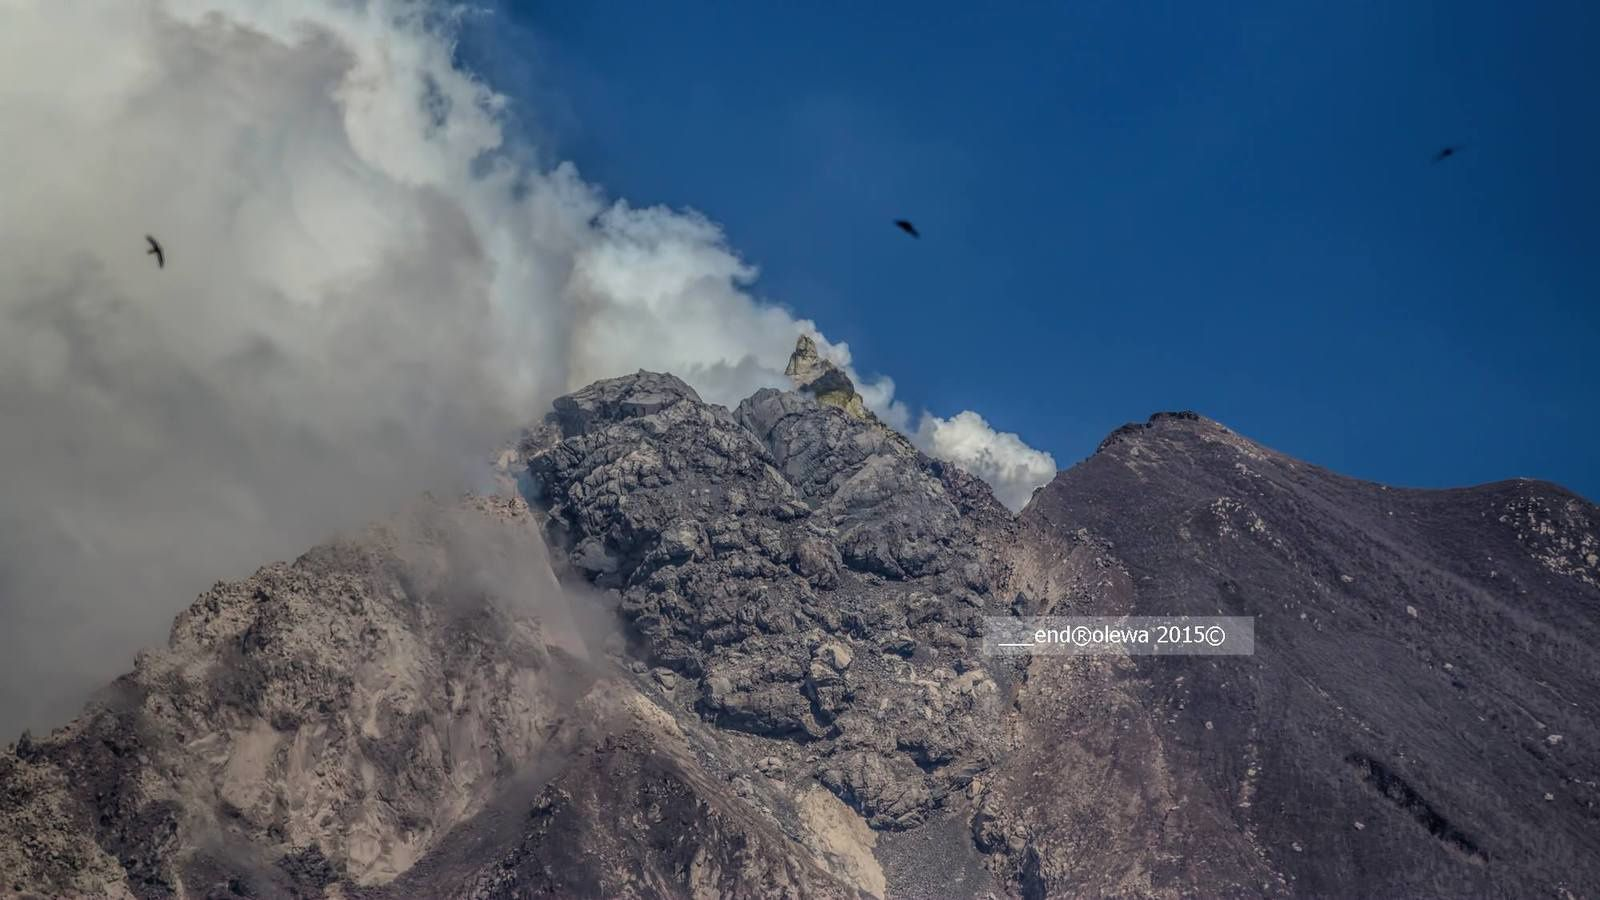 Sinabung - the dome southeast around 9:15 this 05.19.2015 - photo endrolew@